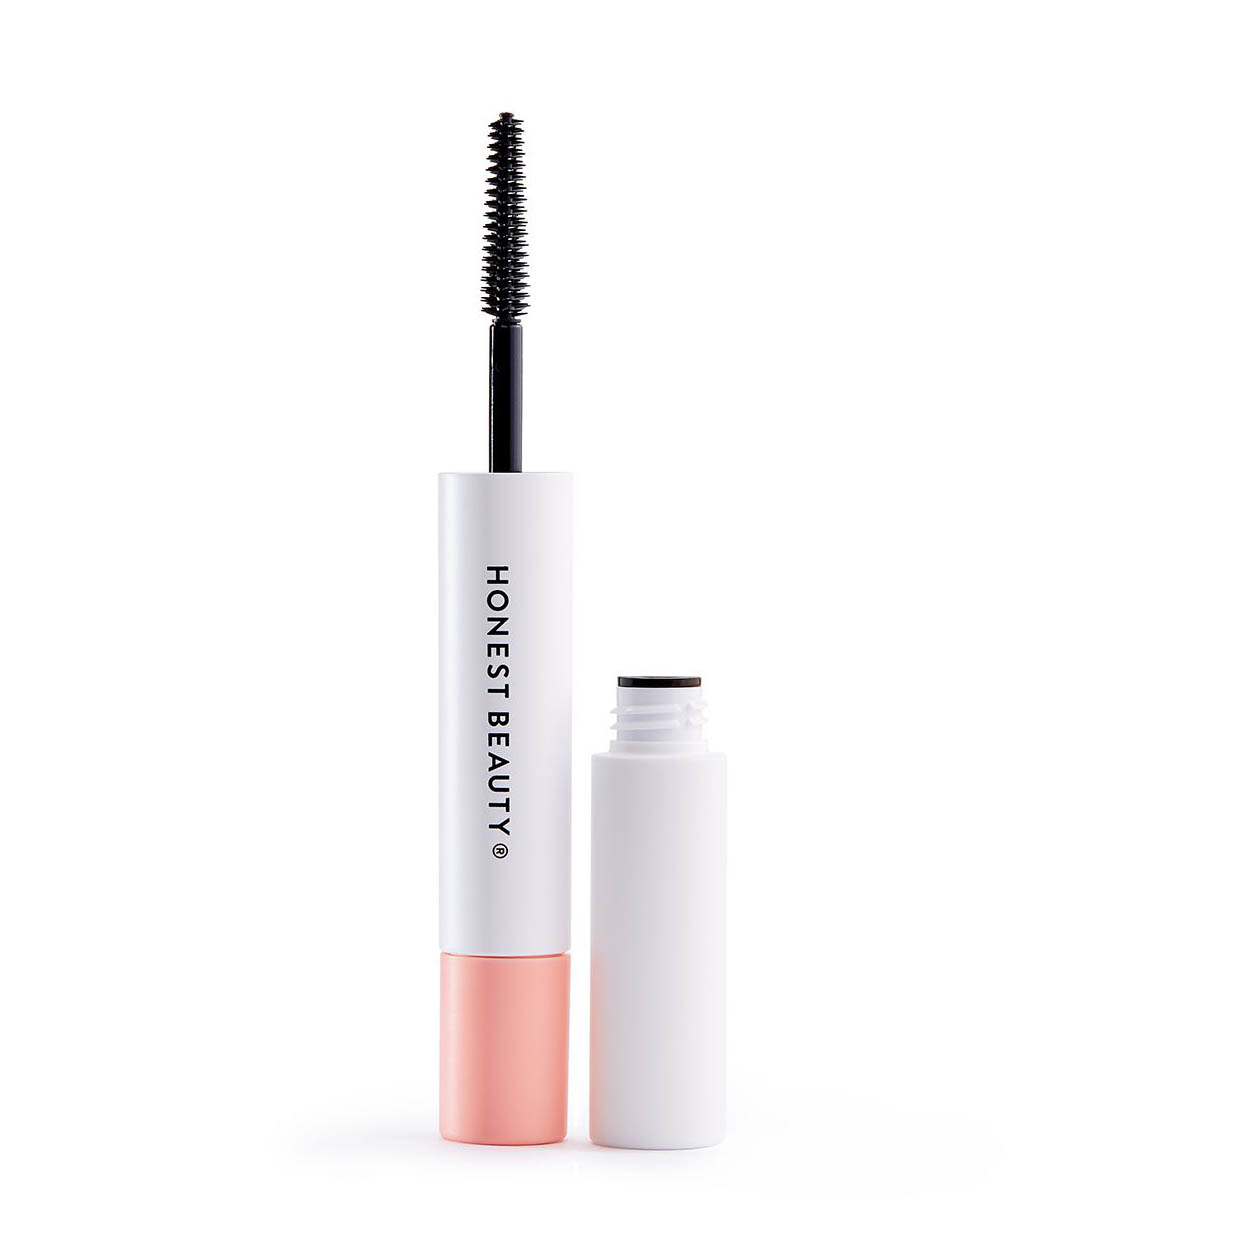 Honest Beauty Extreme Length + Lash Primer Mascara